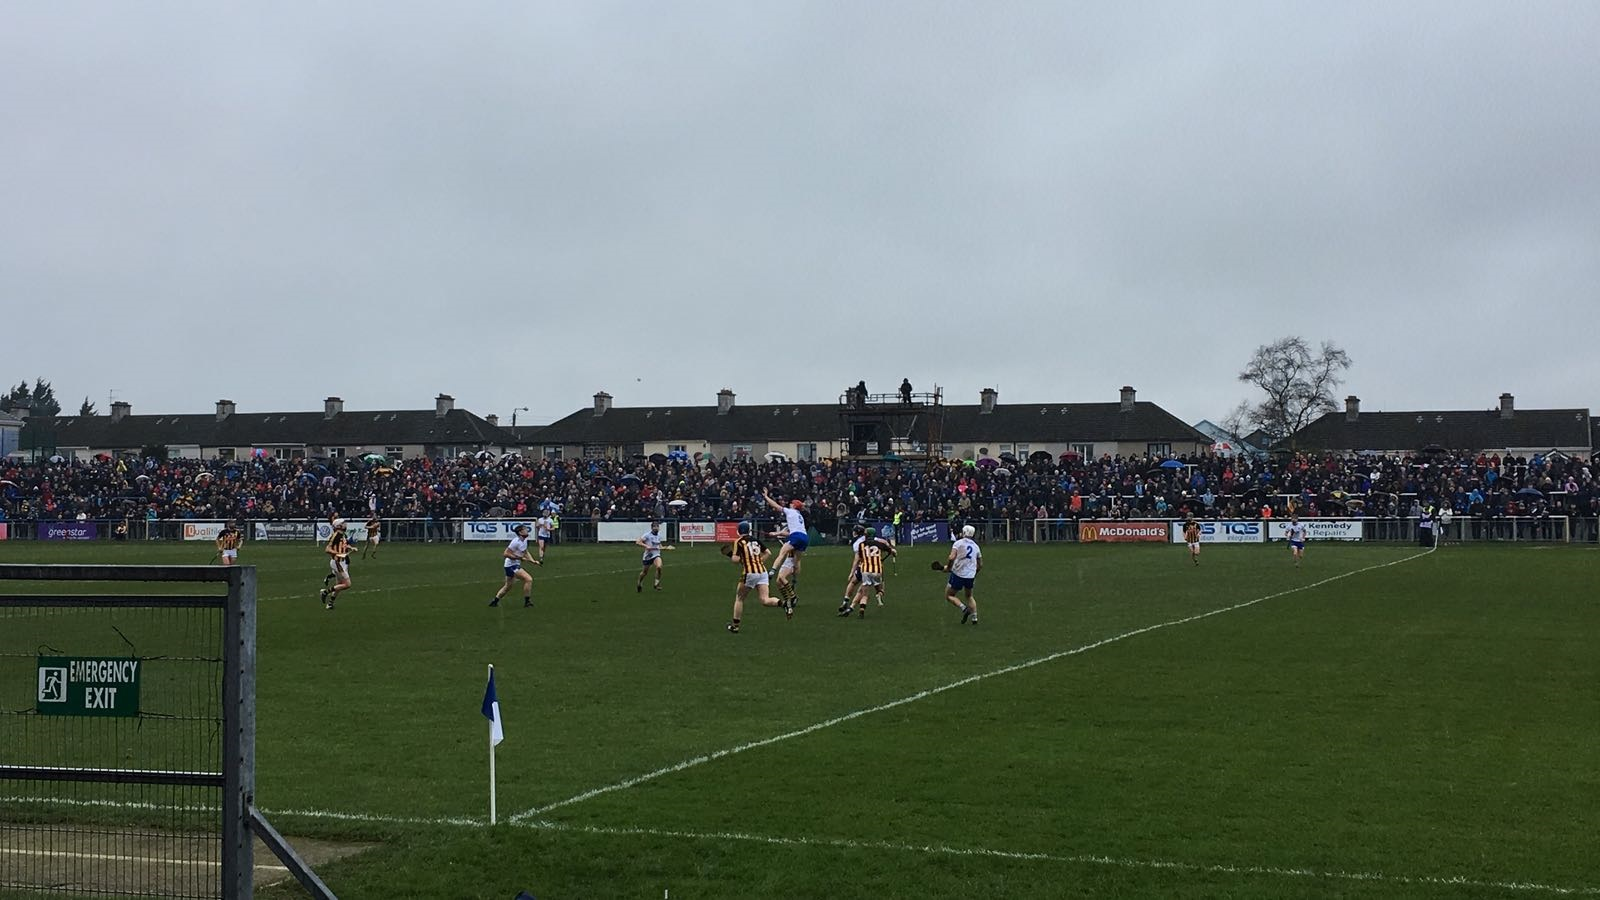 Waterford suffer third straigh defeat in Division 1A of National hurling League